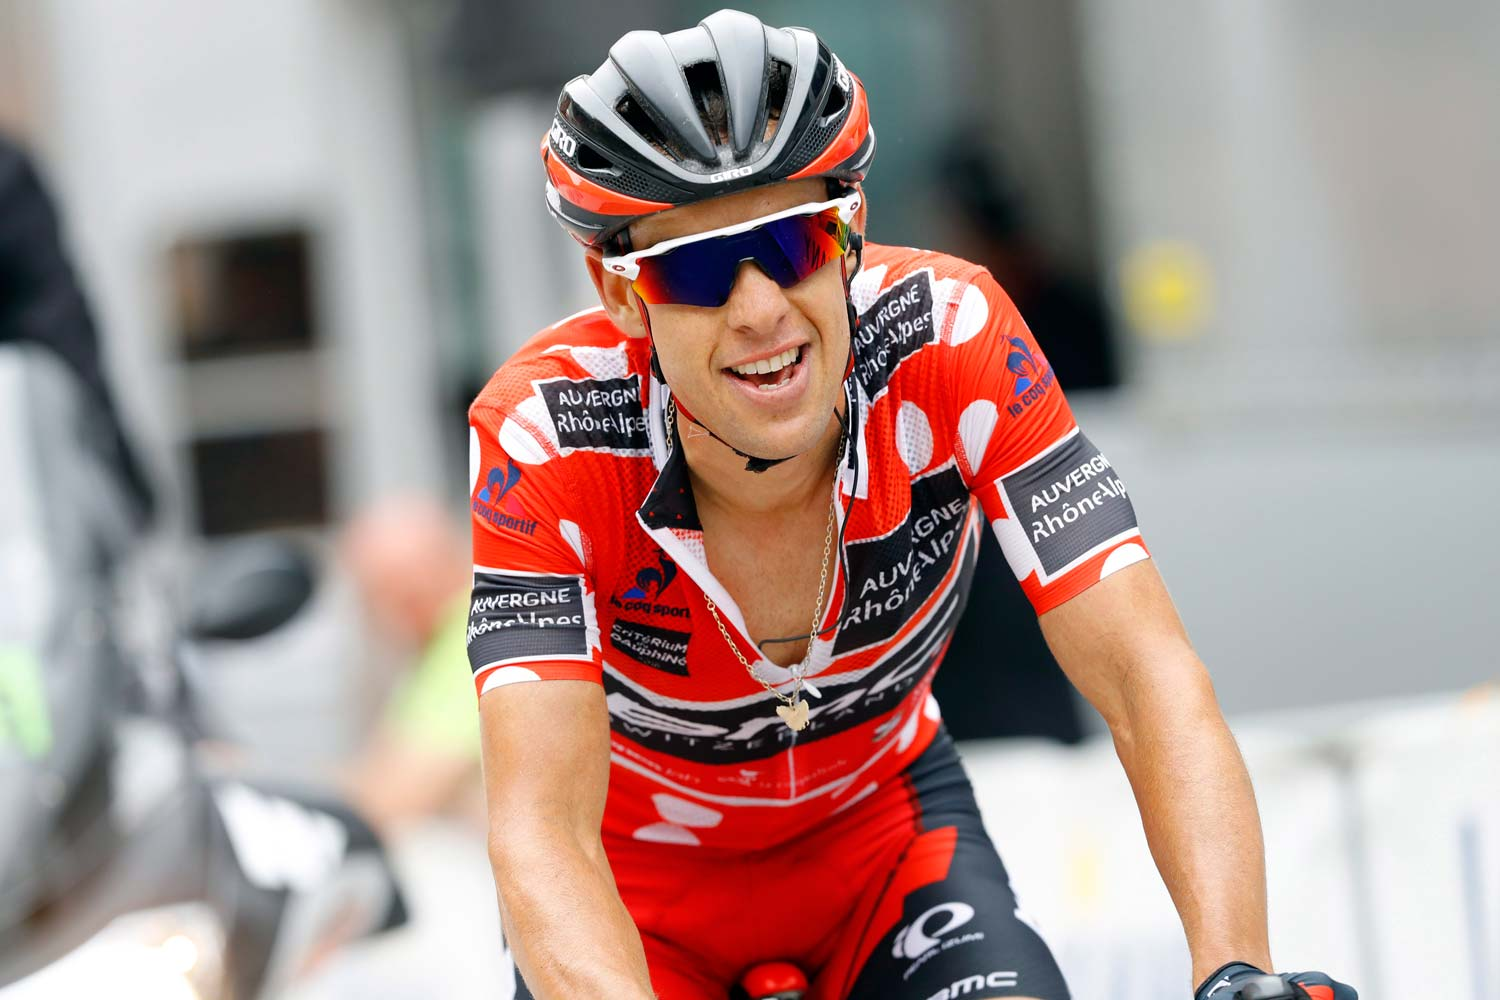 Porte wore the polka-dot jersey at the mid-way mark of the Dauphiné. Photo: Graham Watson